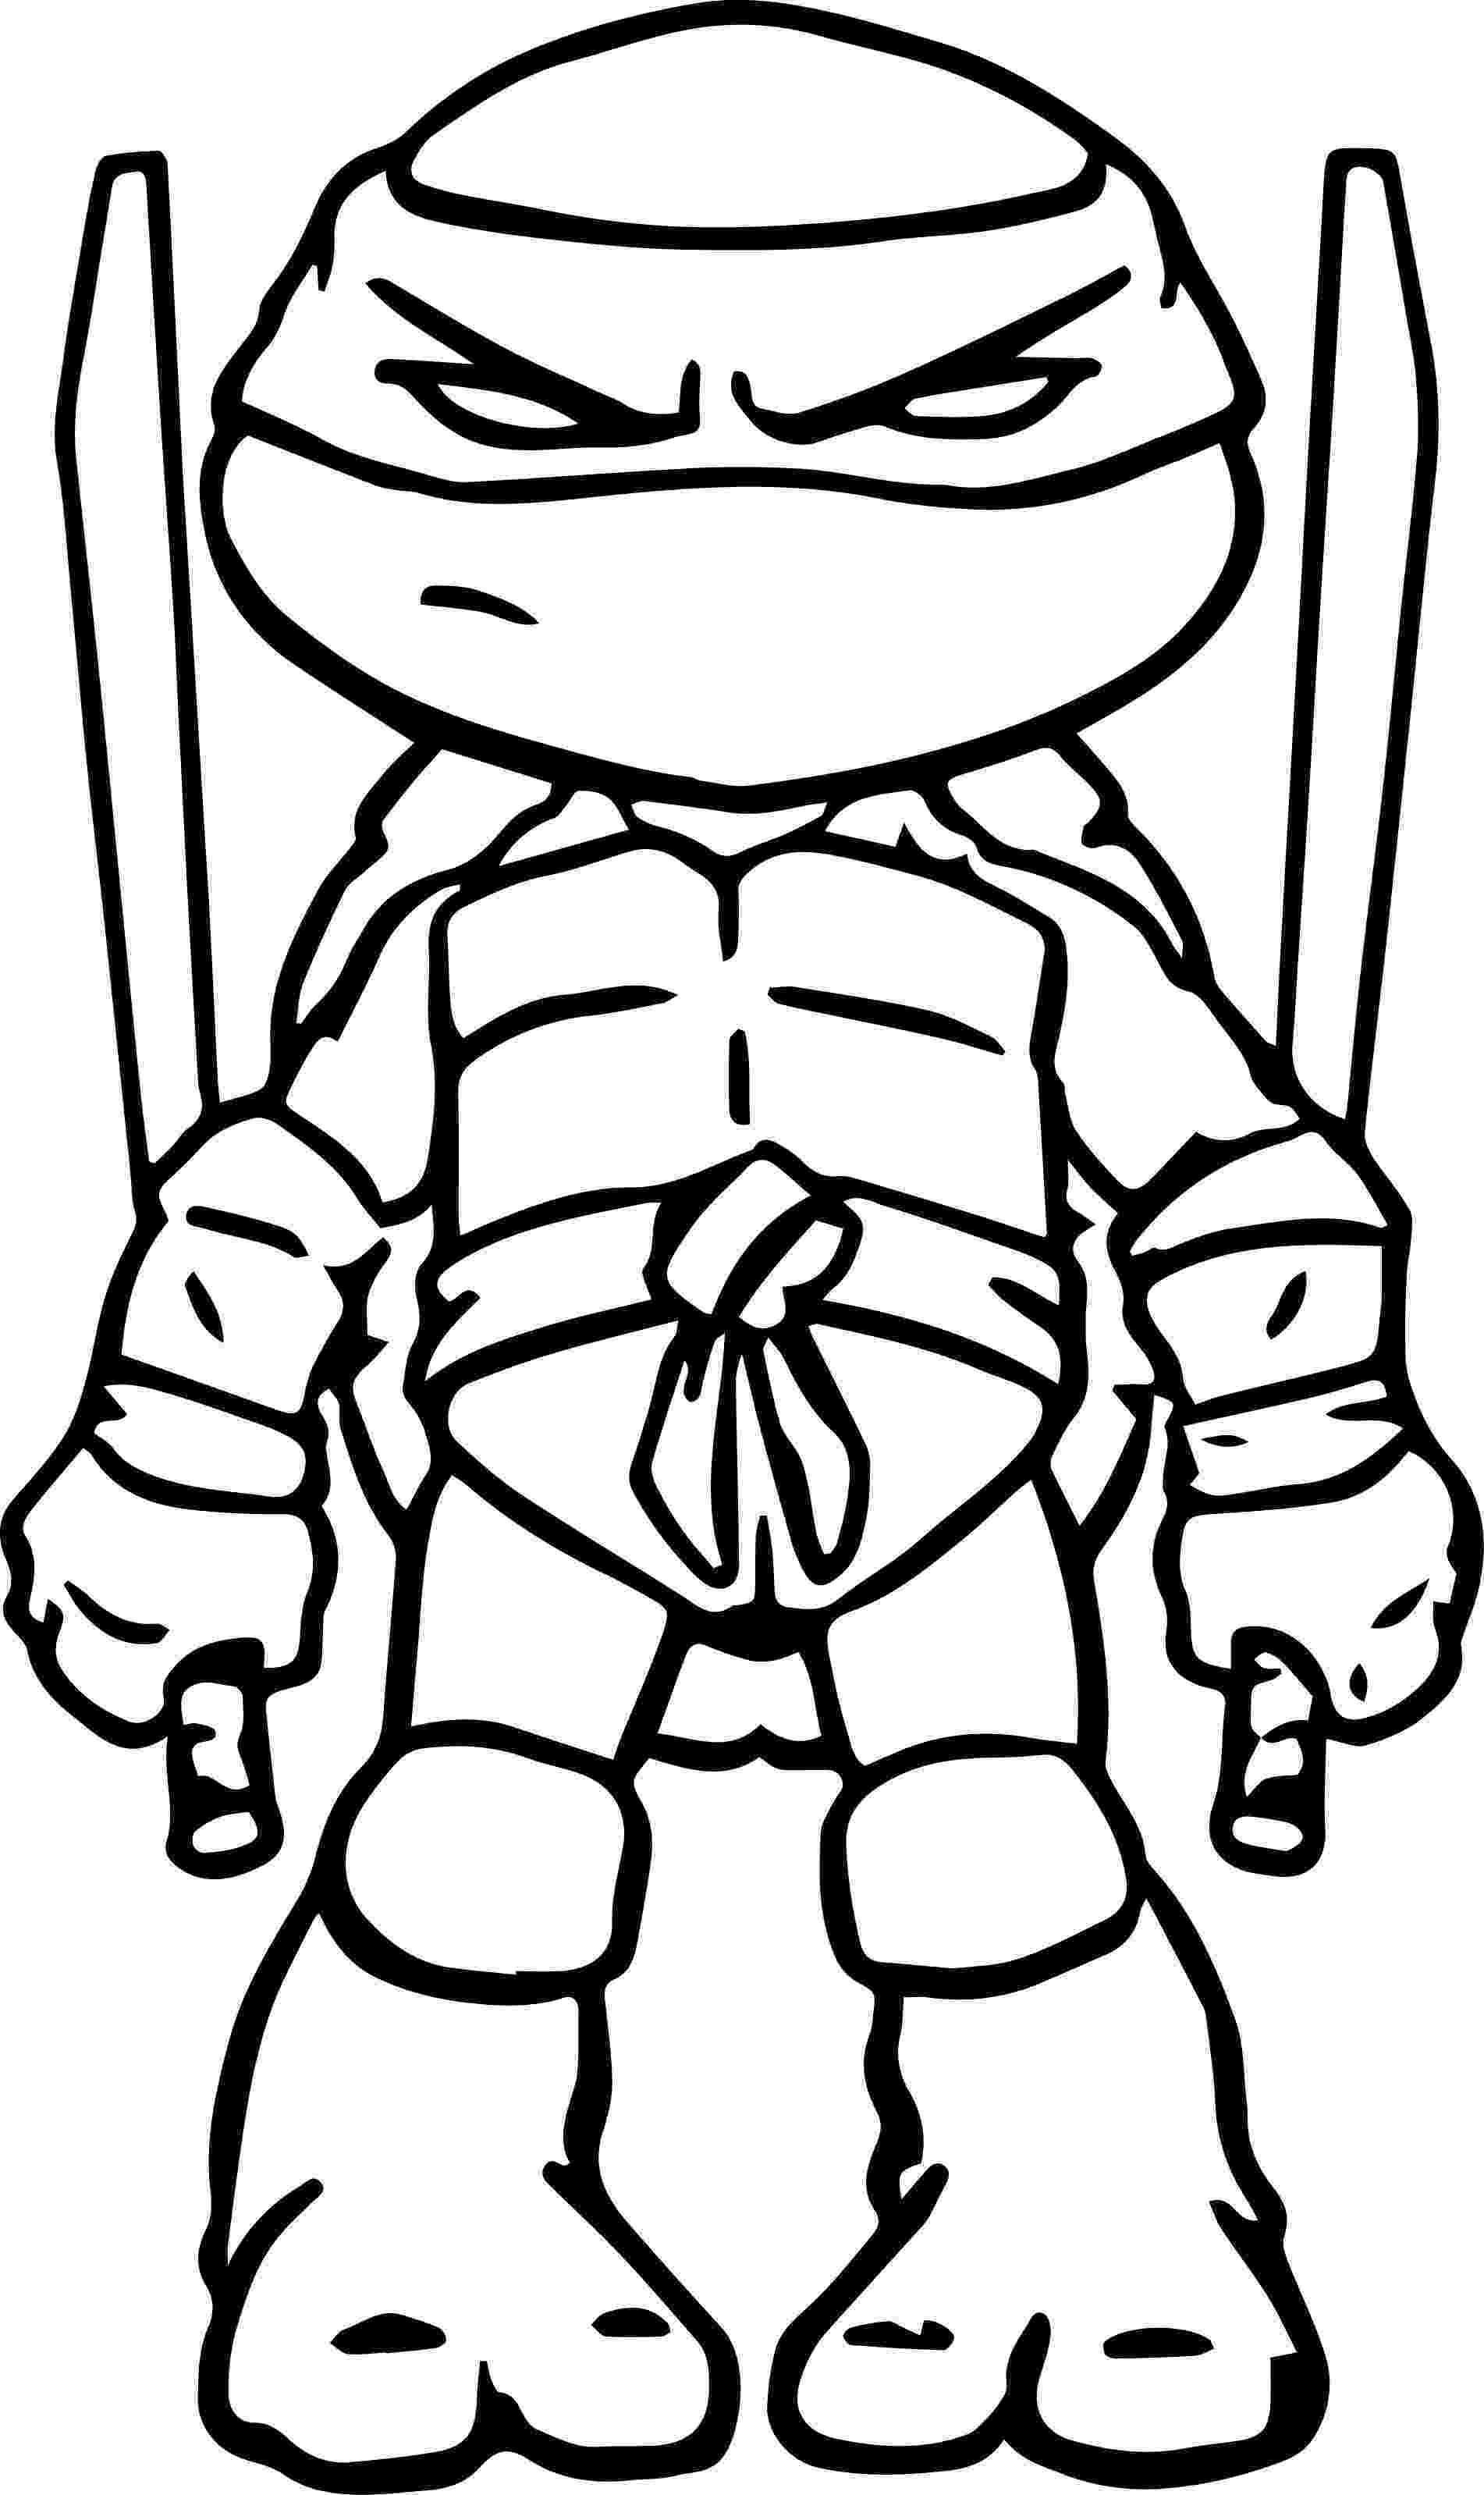 ninja turtles color rise of teenage mutant ninja turtles coloring pages ninja turtles color